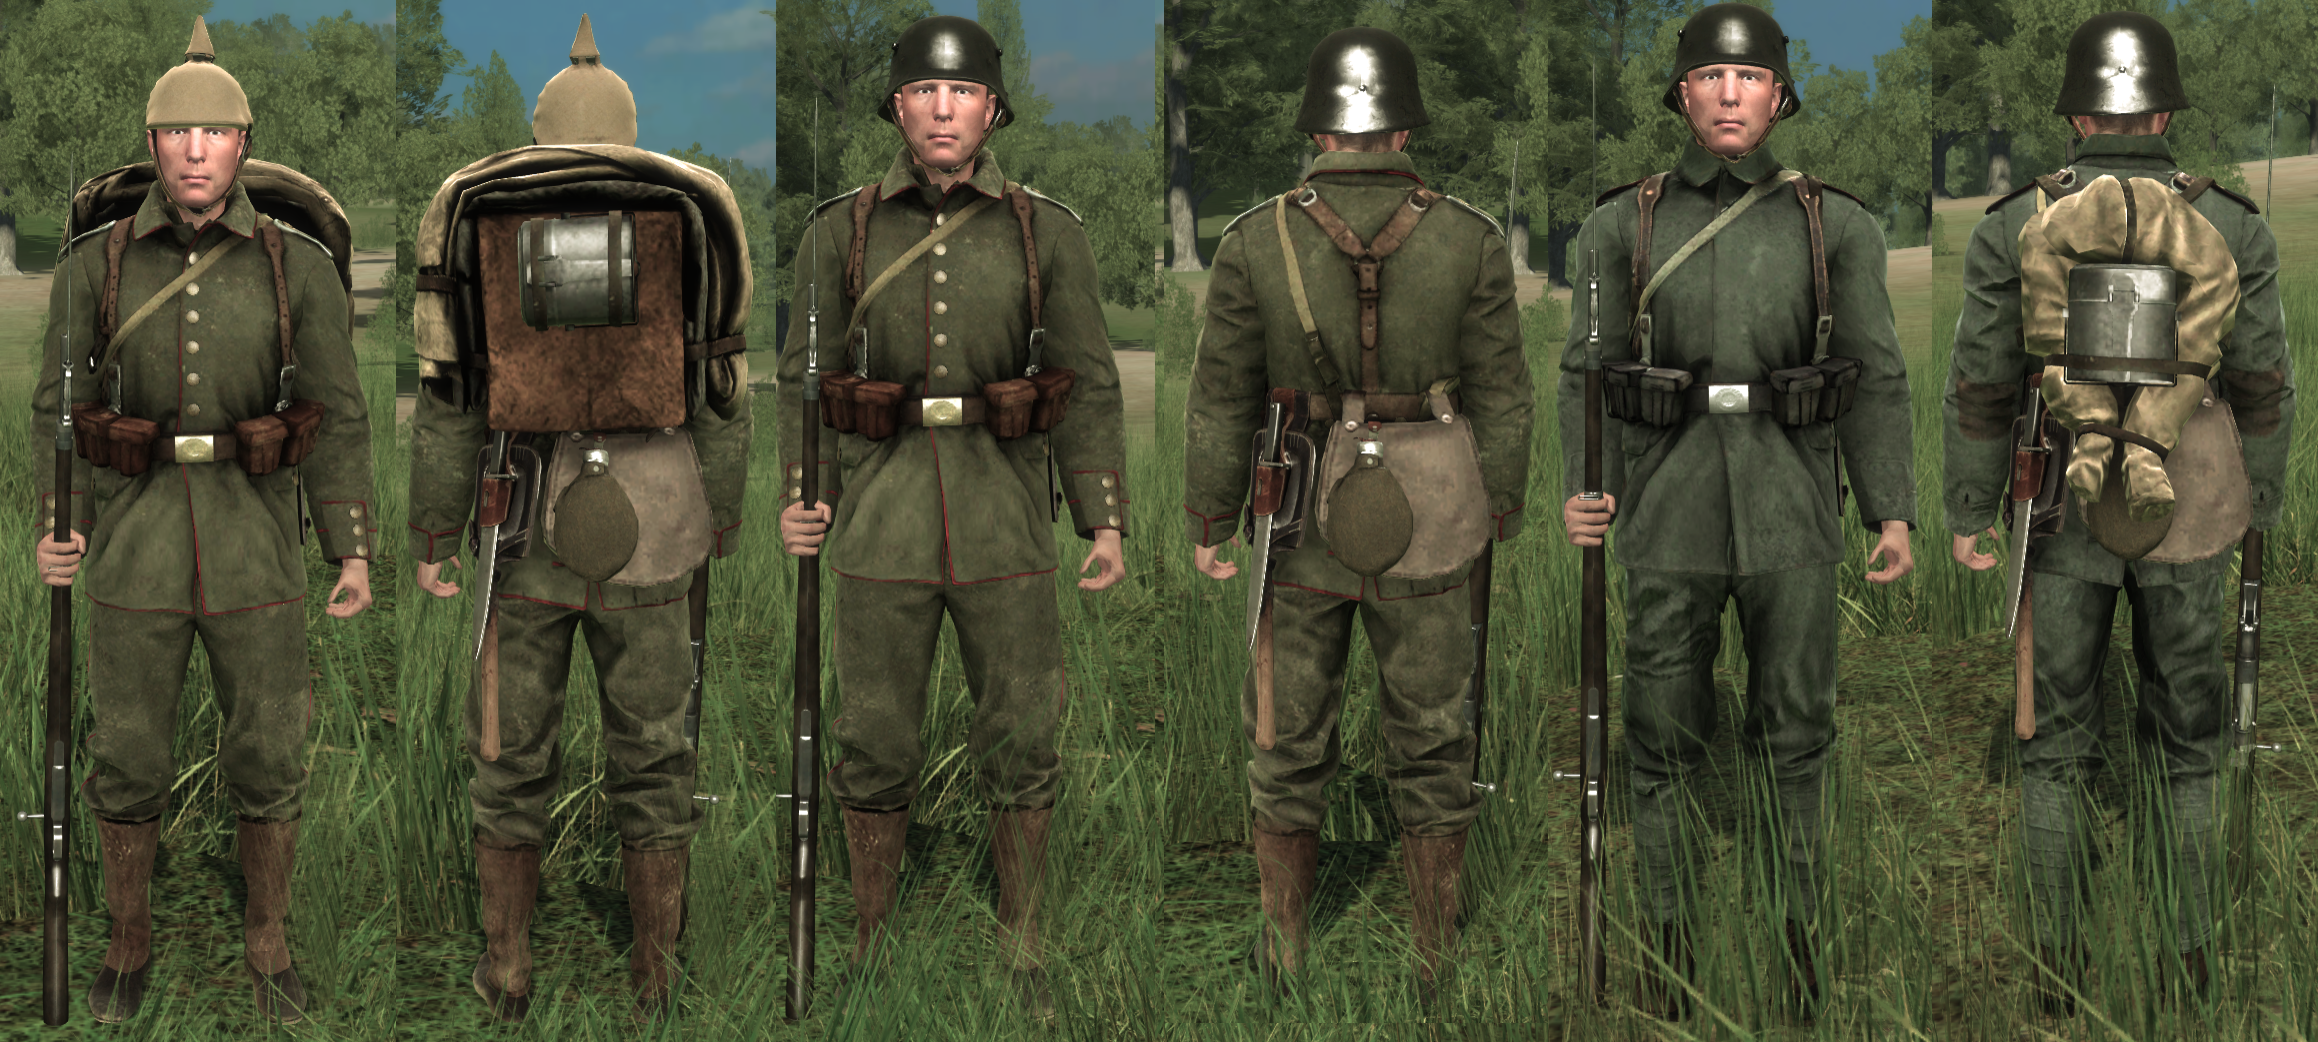 German Uniform Progression: 1900's, early 1910's and mid 1910's respectively